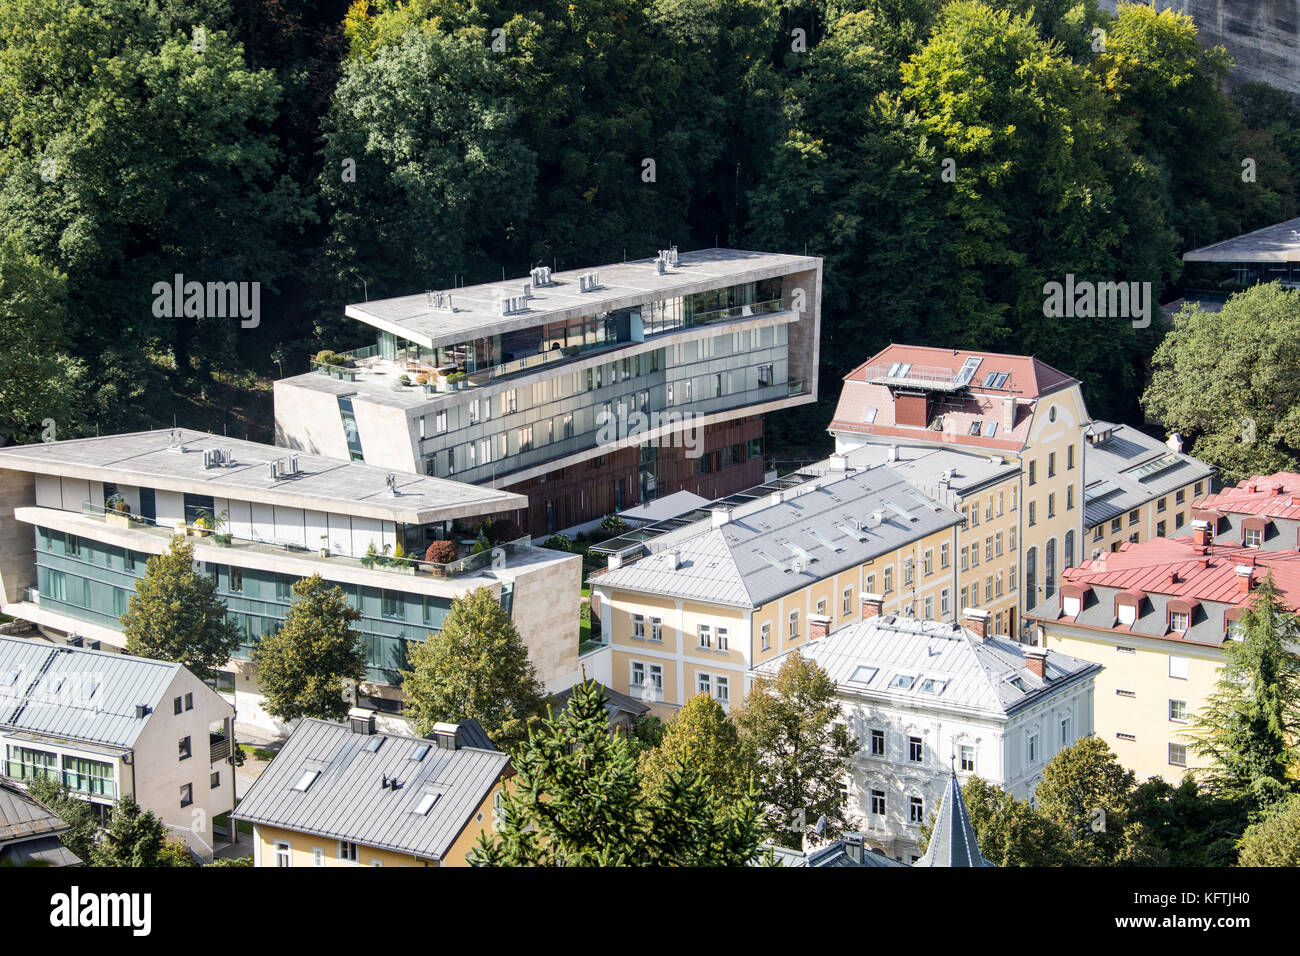 Jewels of Salzburg, Housing development designed by Hariri and Hariri Architecture, Salzburg, Austria - Stock Image